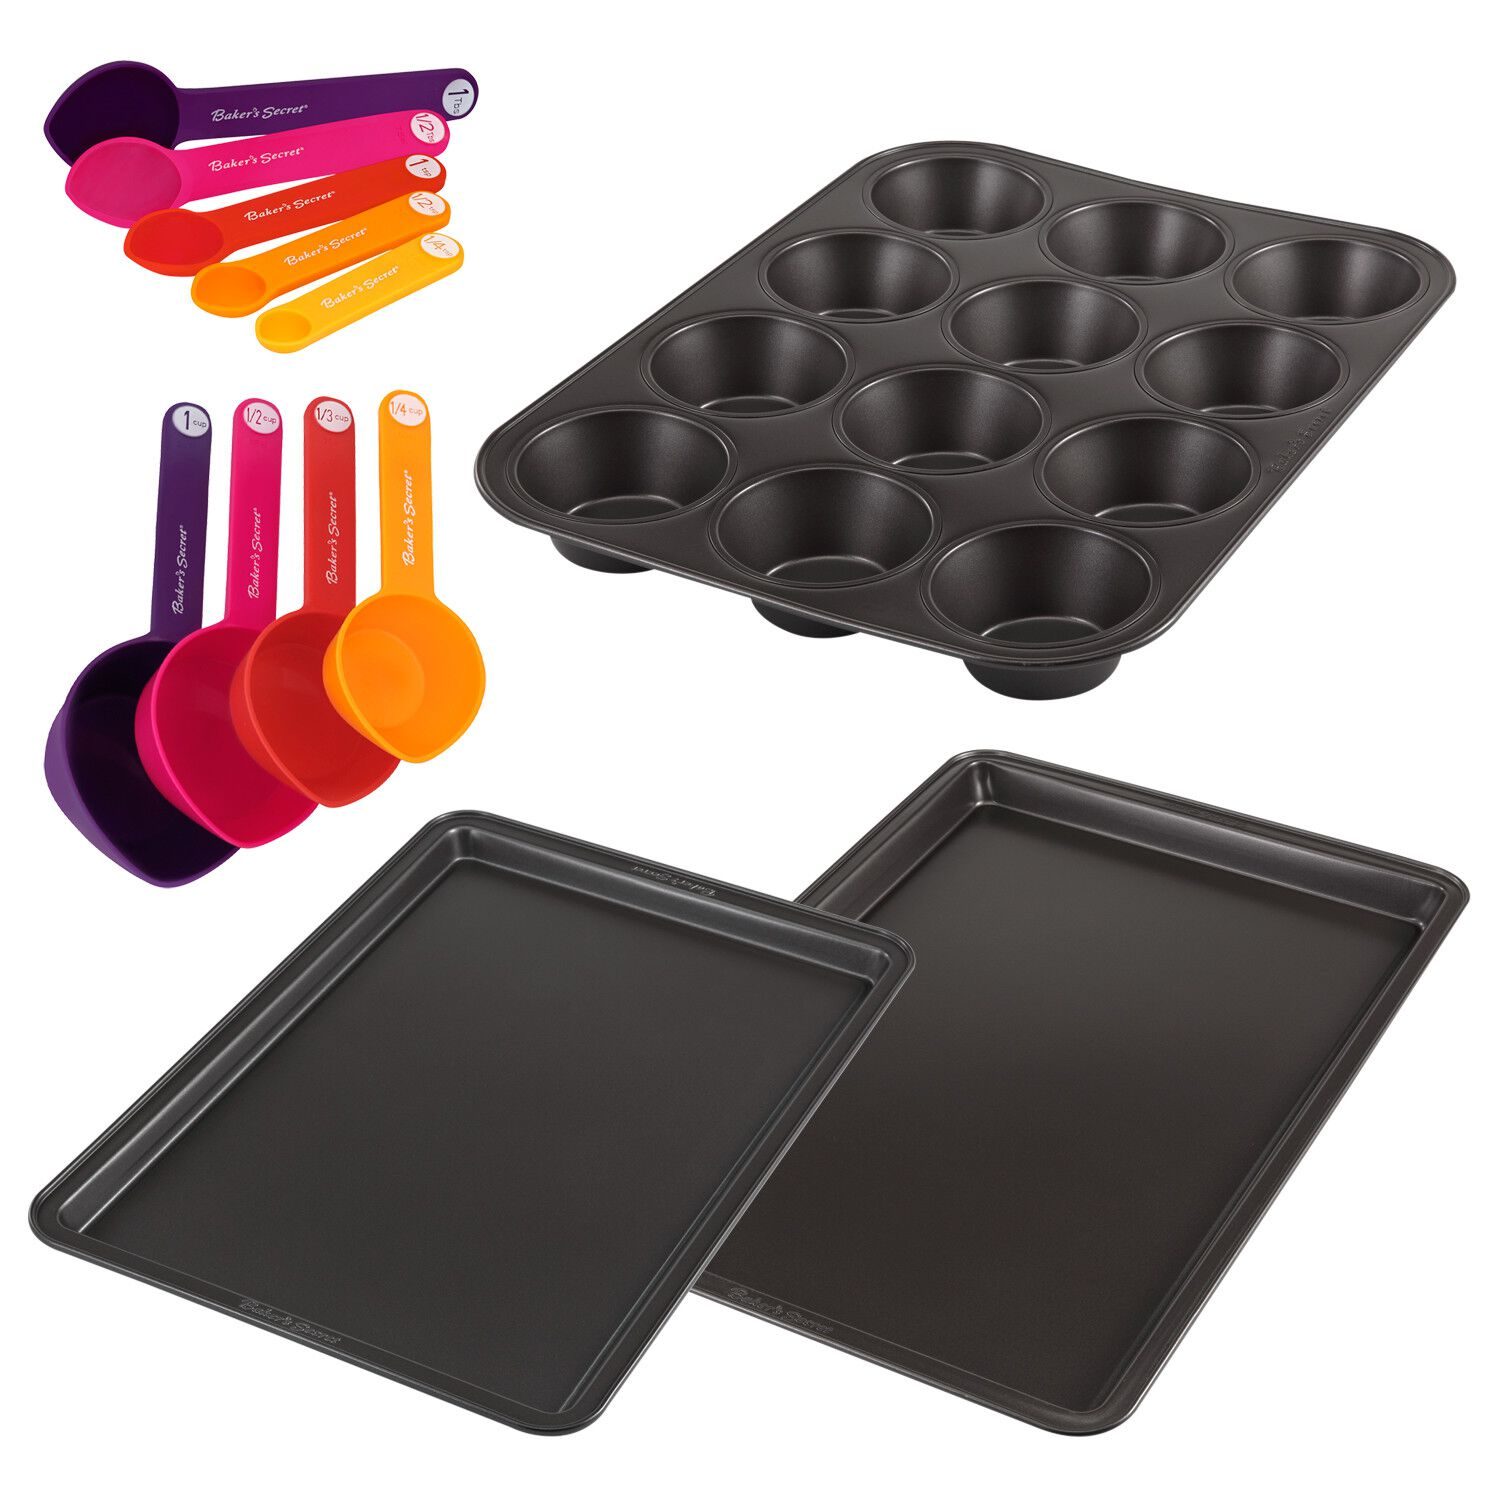 Baker's Secret 12-Pc Mixed Bakeware Set